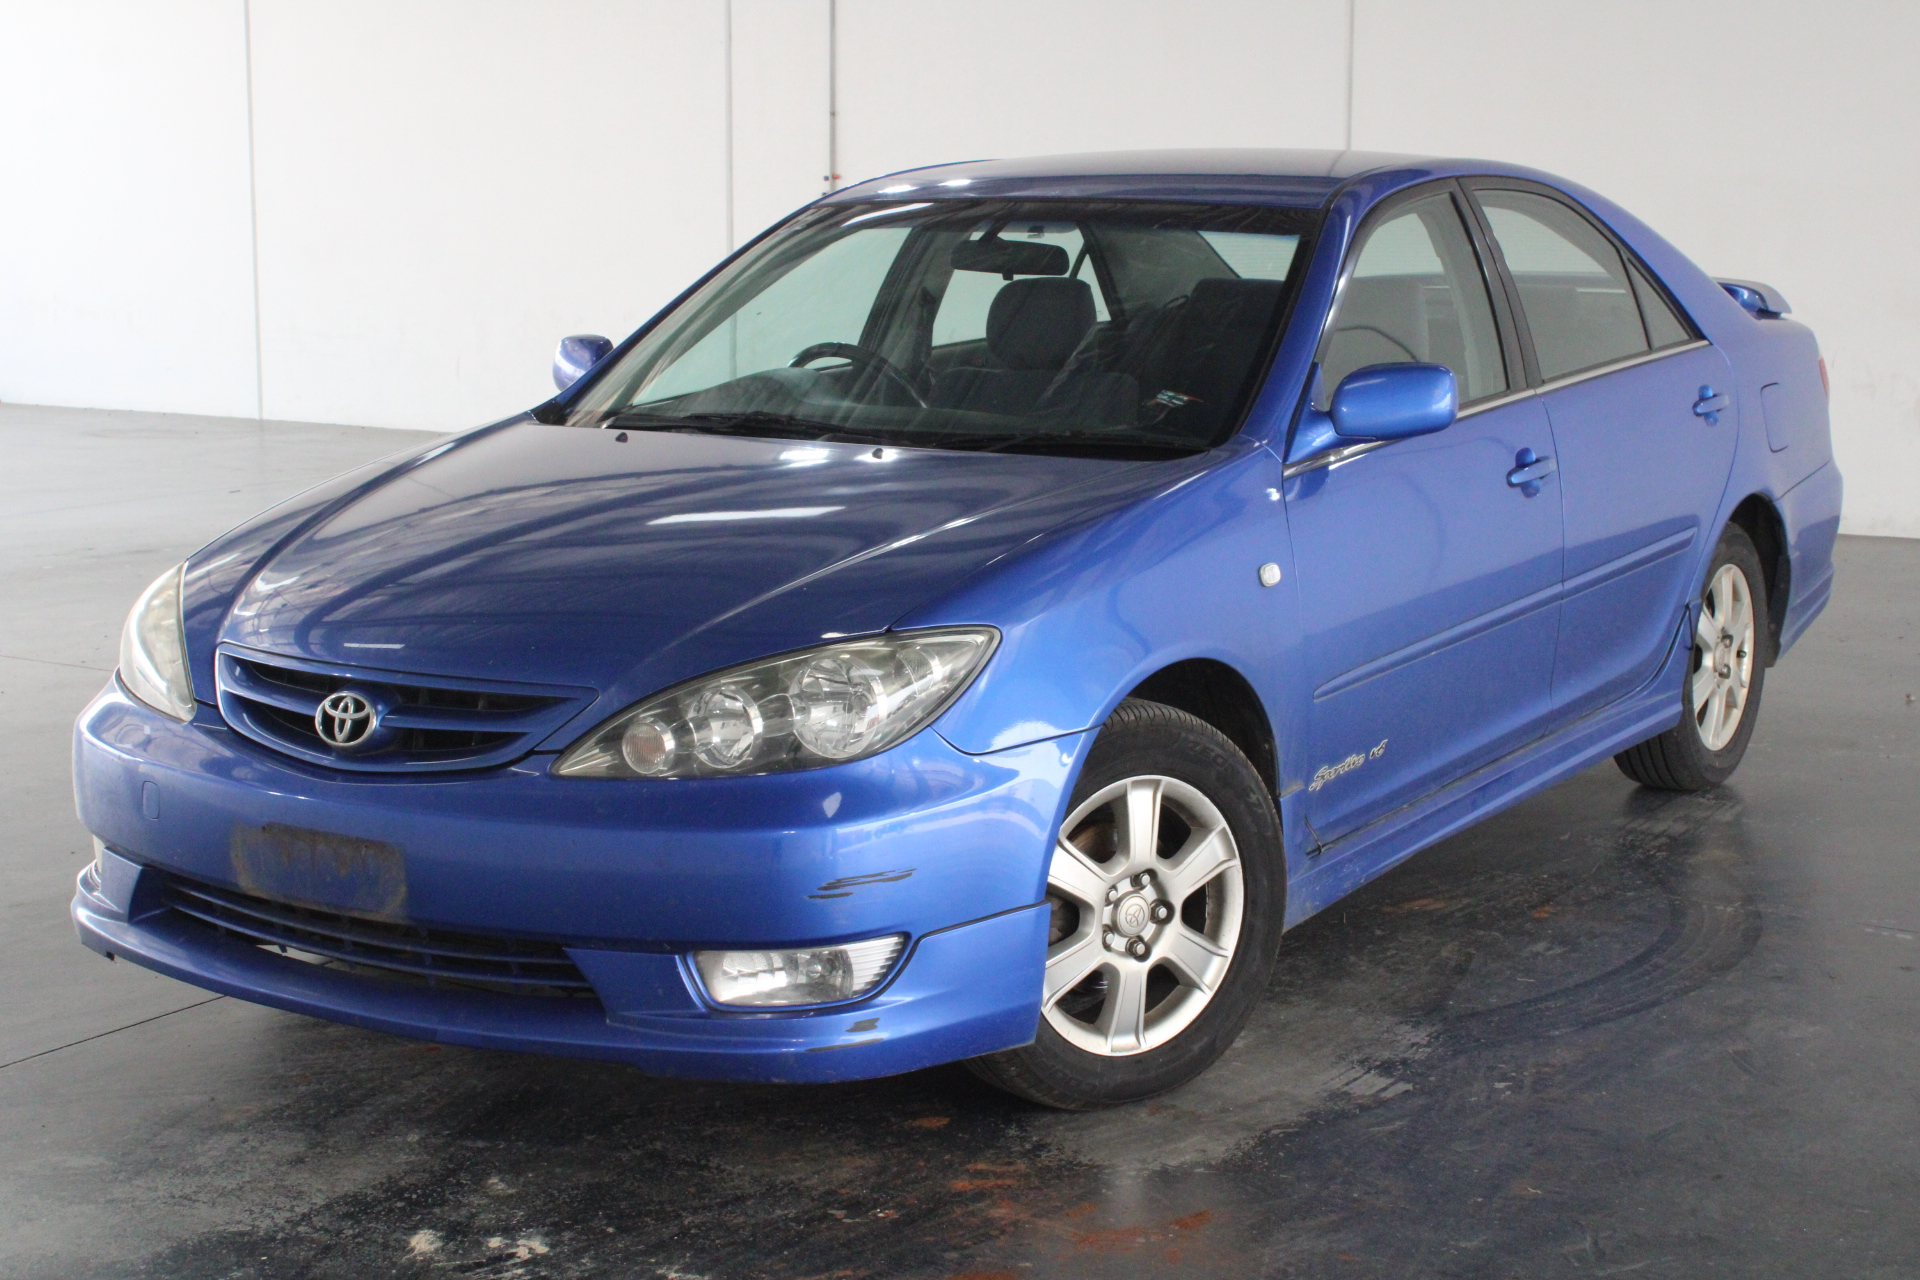 2005 Toyota Camry Sportivo MCV36R Manual Sedan